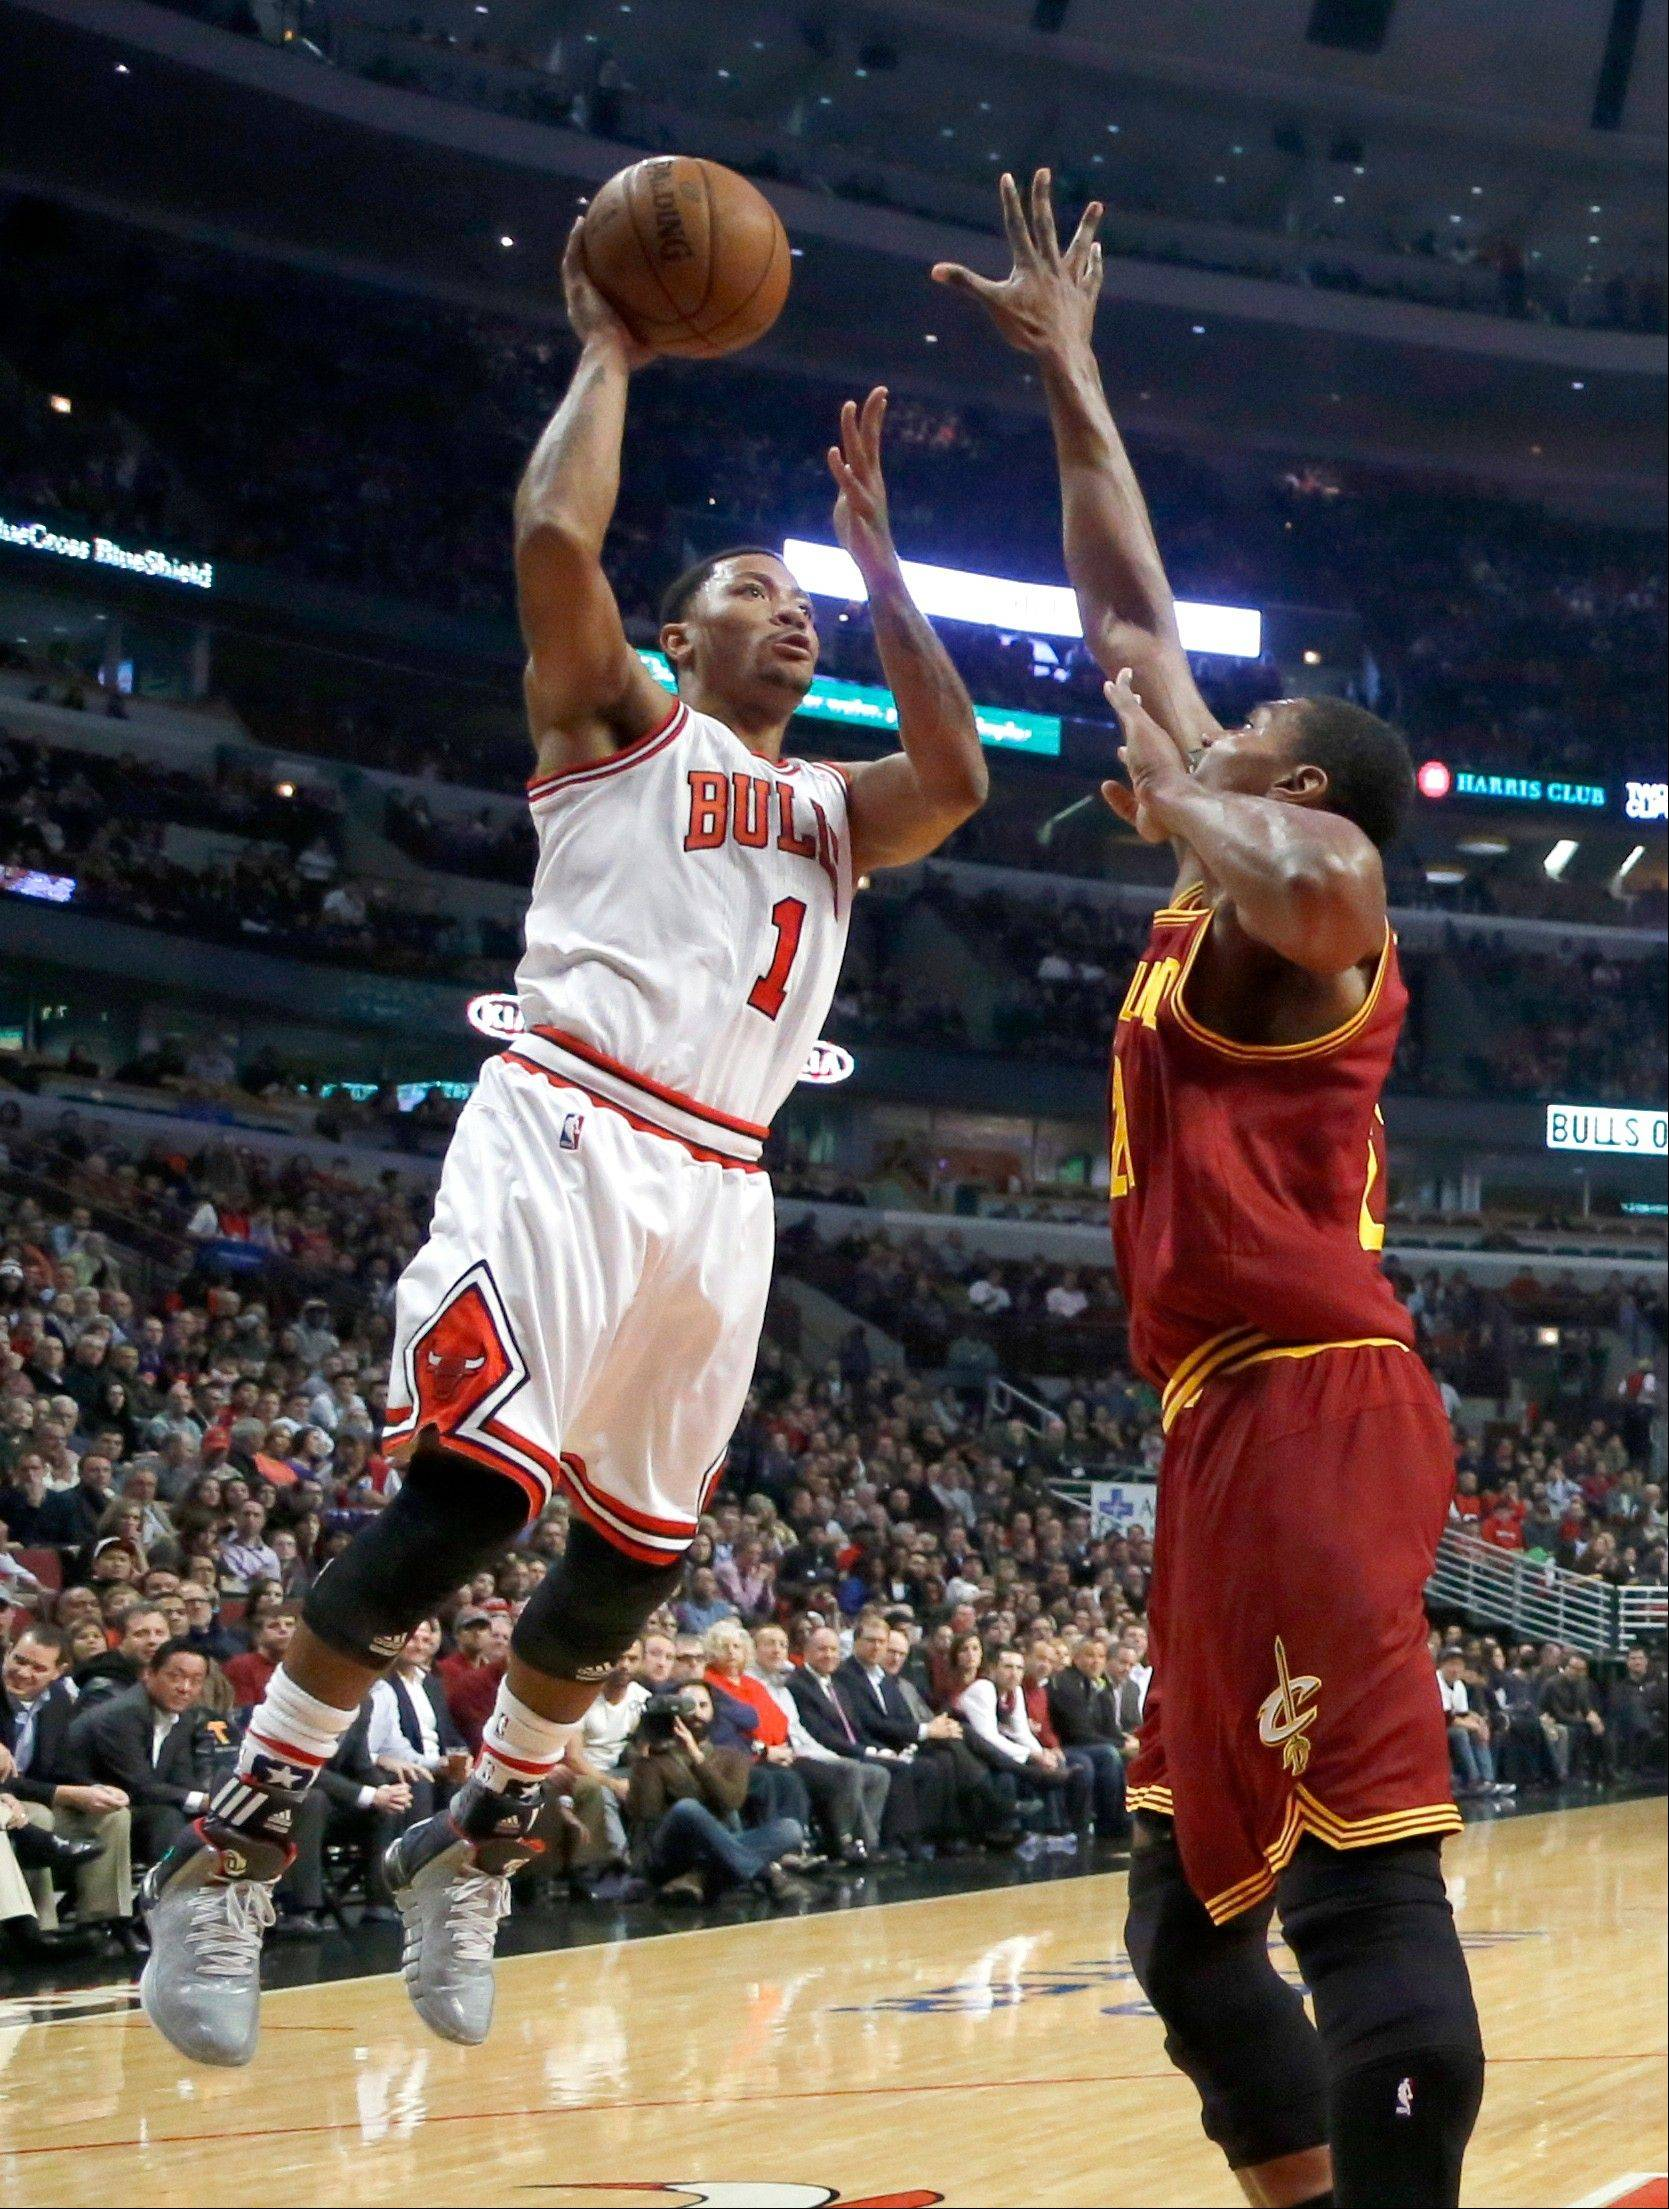 The Bulls' Derrick Rose shoots over Cleveland's Andrew Bynum during the first half Monday night at the United Center. Rose sat out the final three minutes of the Bulls' victory after suffering a hamstring injury.